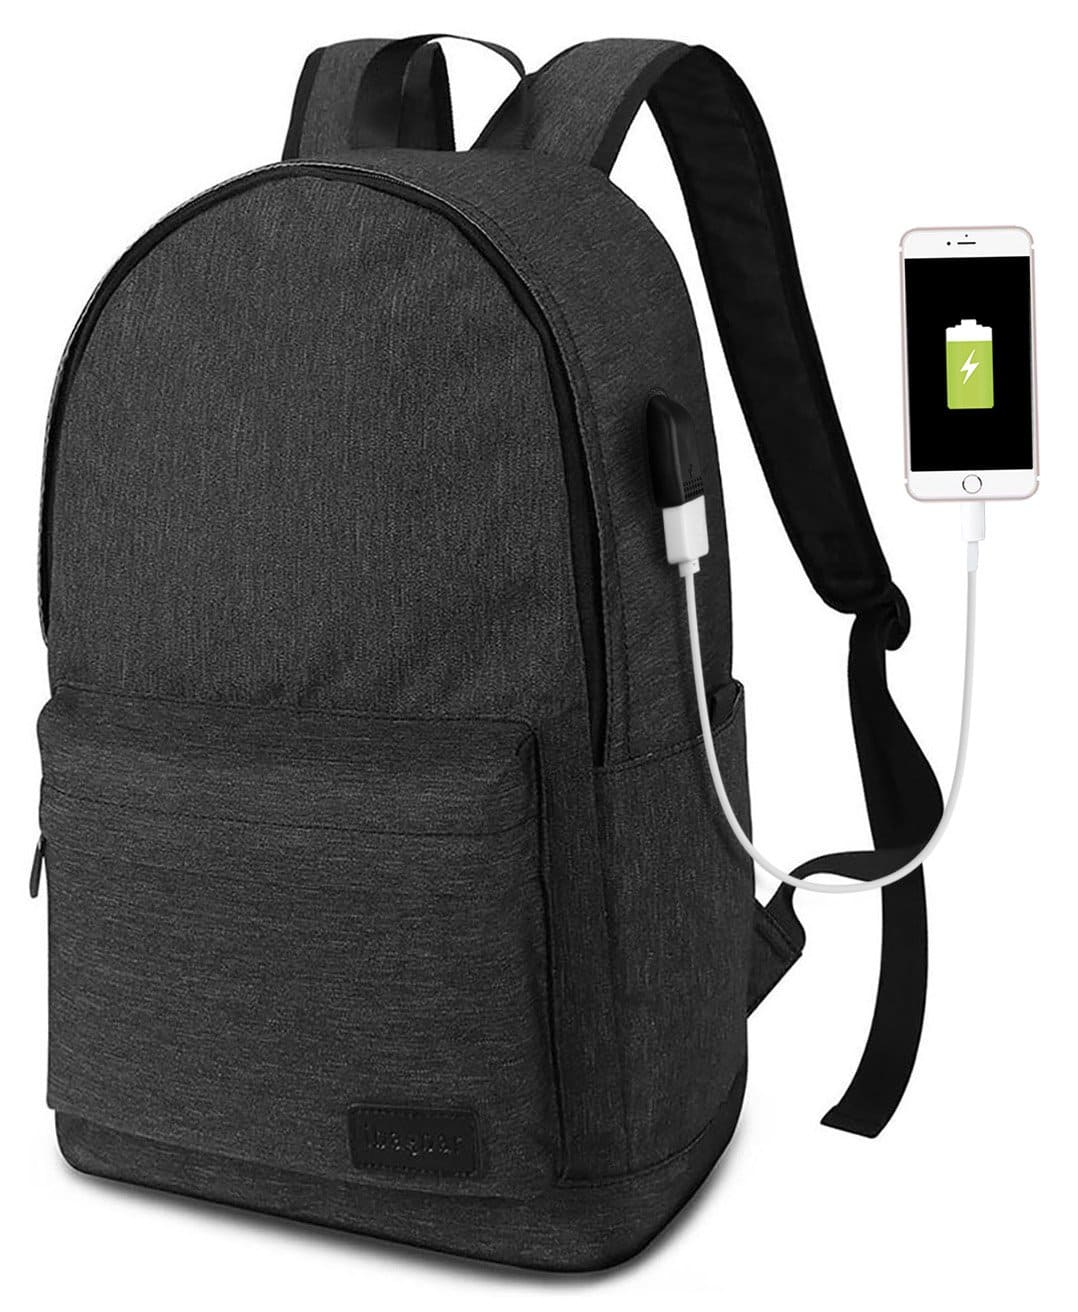 "Laptop Backpack Daypack 15.6"" $8.05 AC Shipped via Amazon"